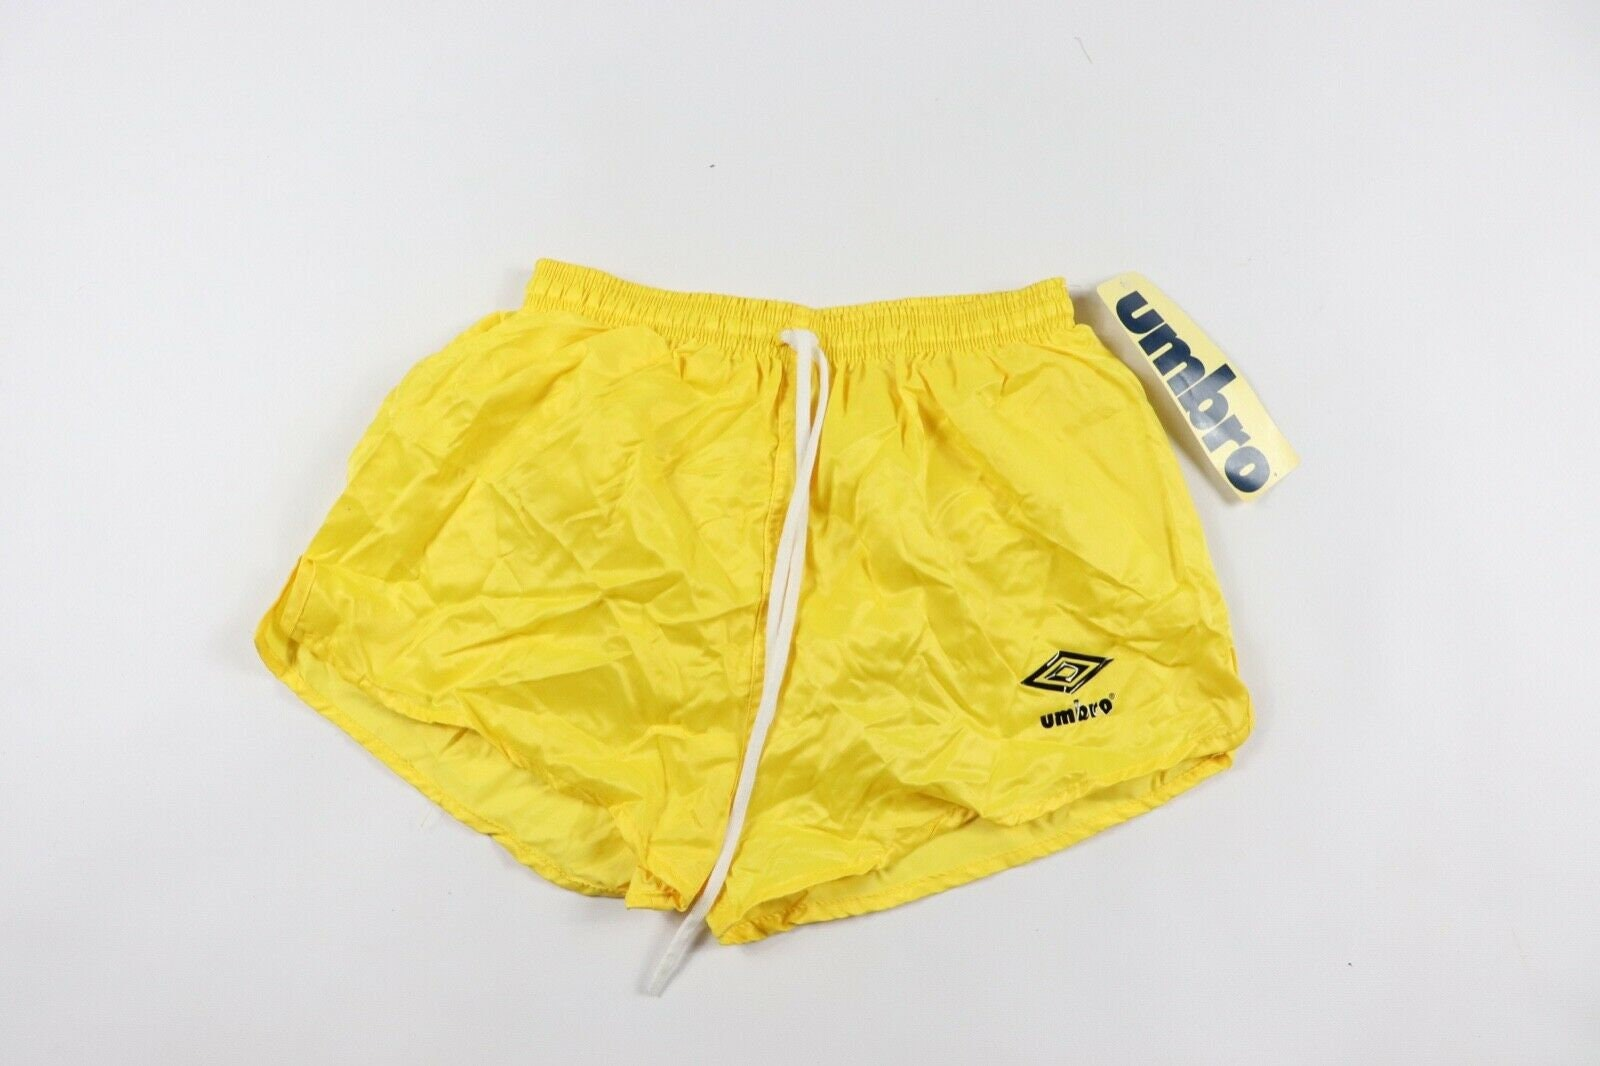 87257b56ee5 80s New Umbro Spell Out World Cup Lined Nylon Soccer Shorts